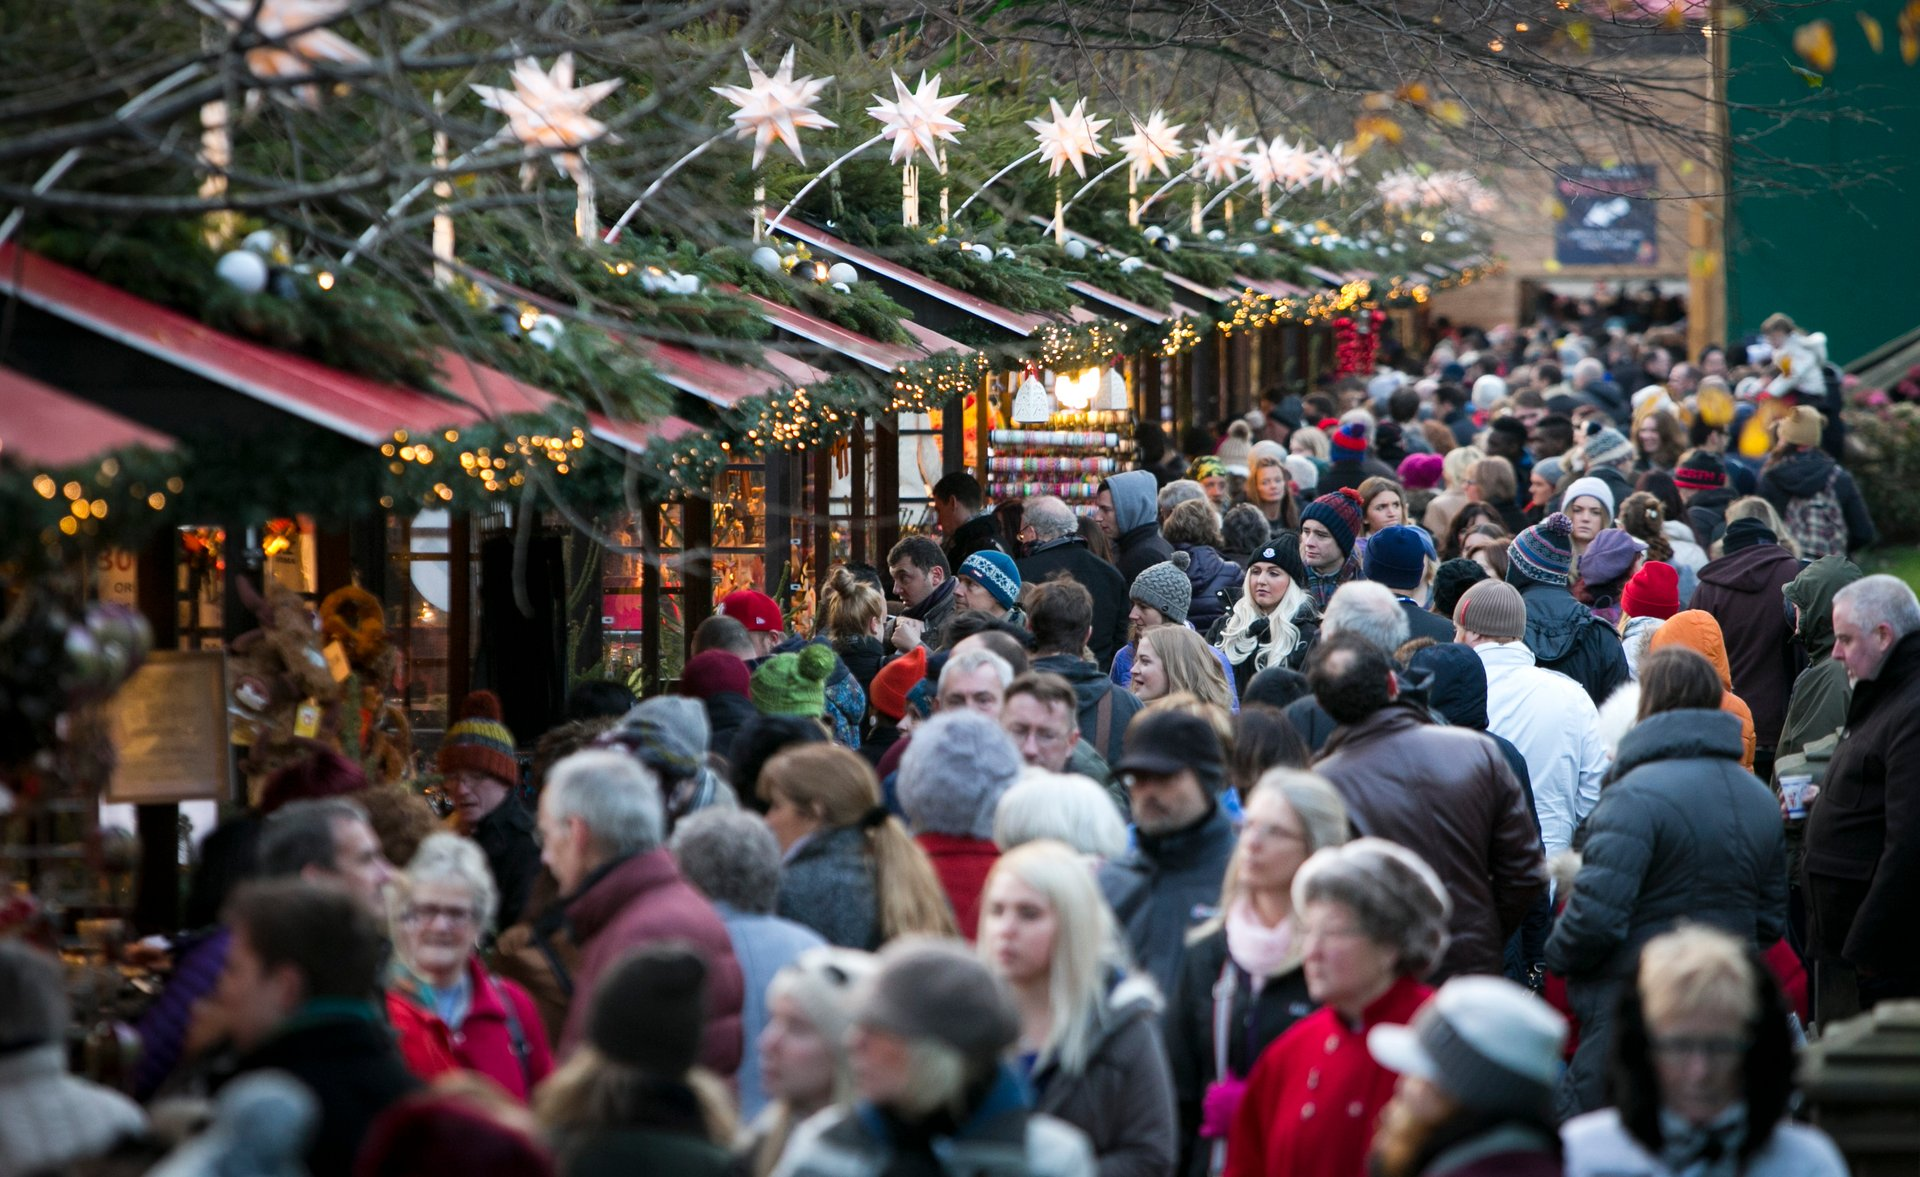 Edinburgh Christmas Market in Edinburgh 2020 - Best Time